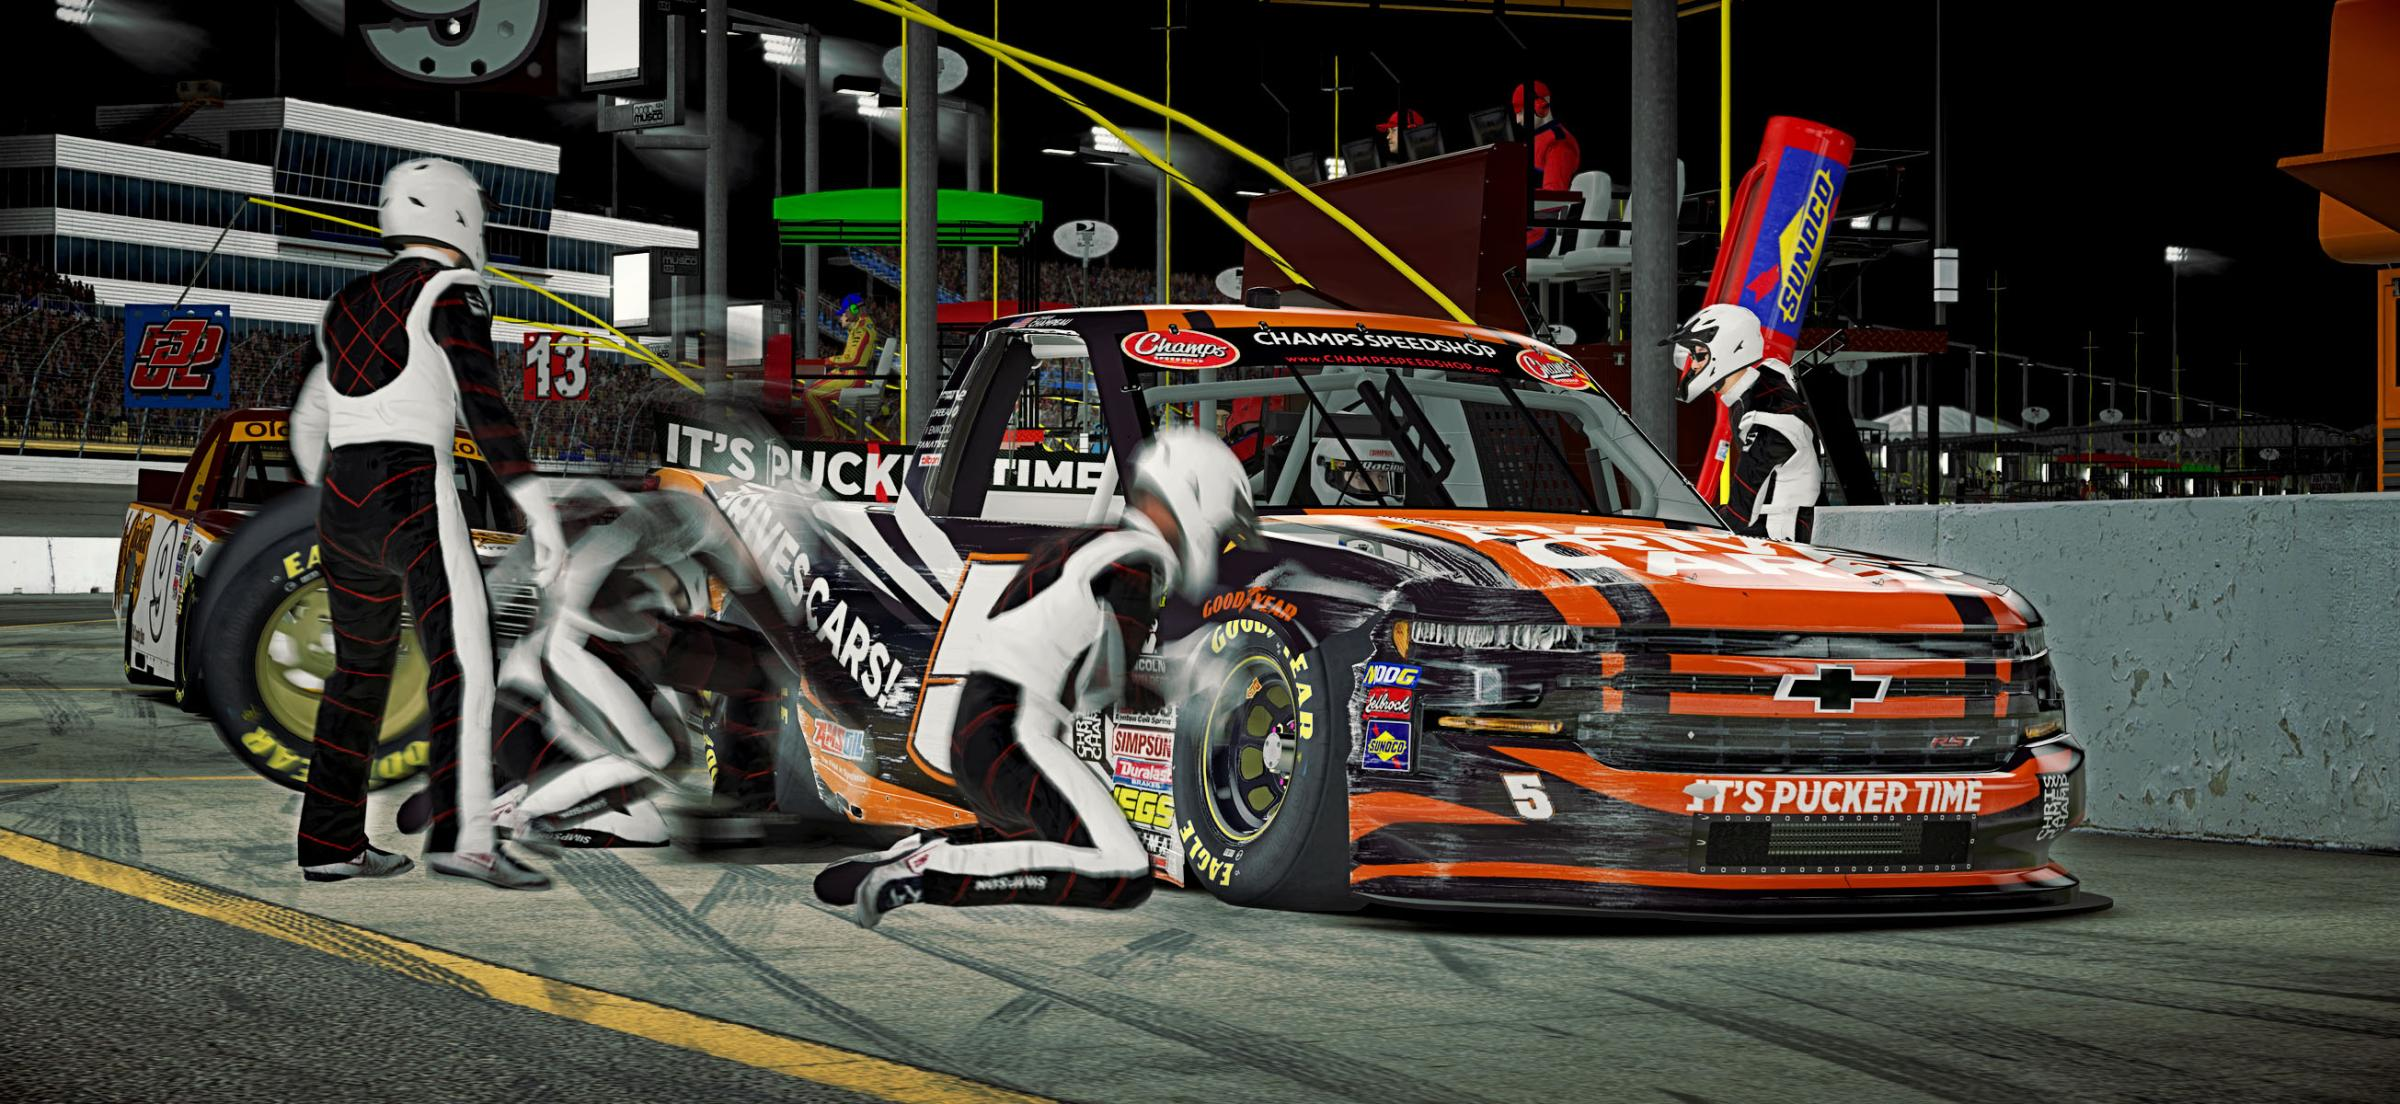 Preview of Champ Drives Cars powered Chevrolet Silverado Truck 2019 by Chris C.